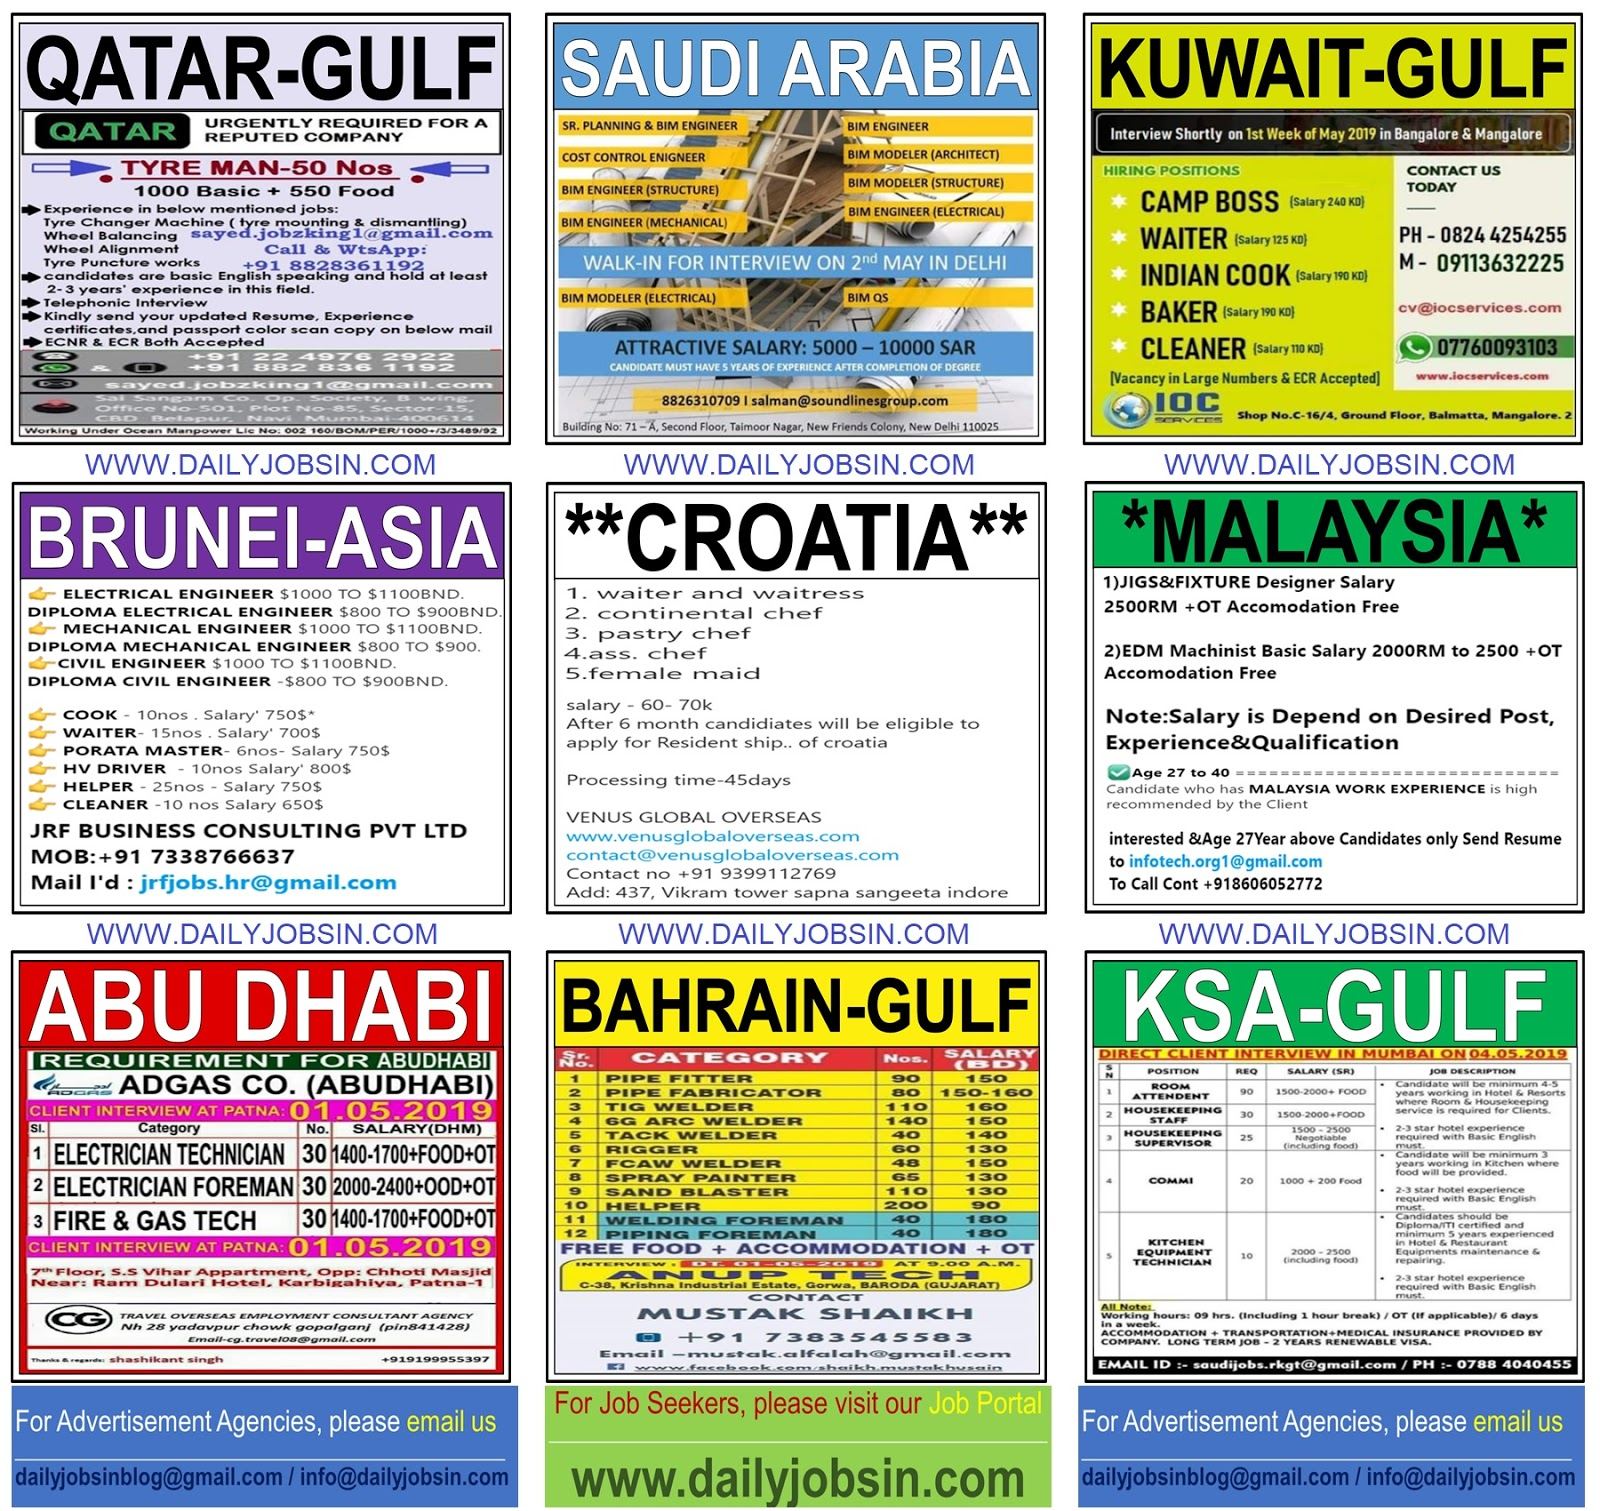 JOBS IN MALAYSIA, BRUNEI, CROATIA & GULF COUNTRIES ||